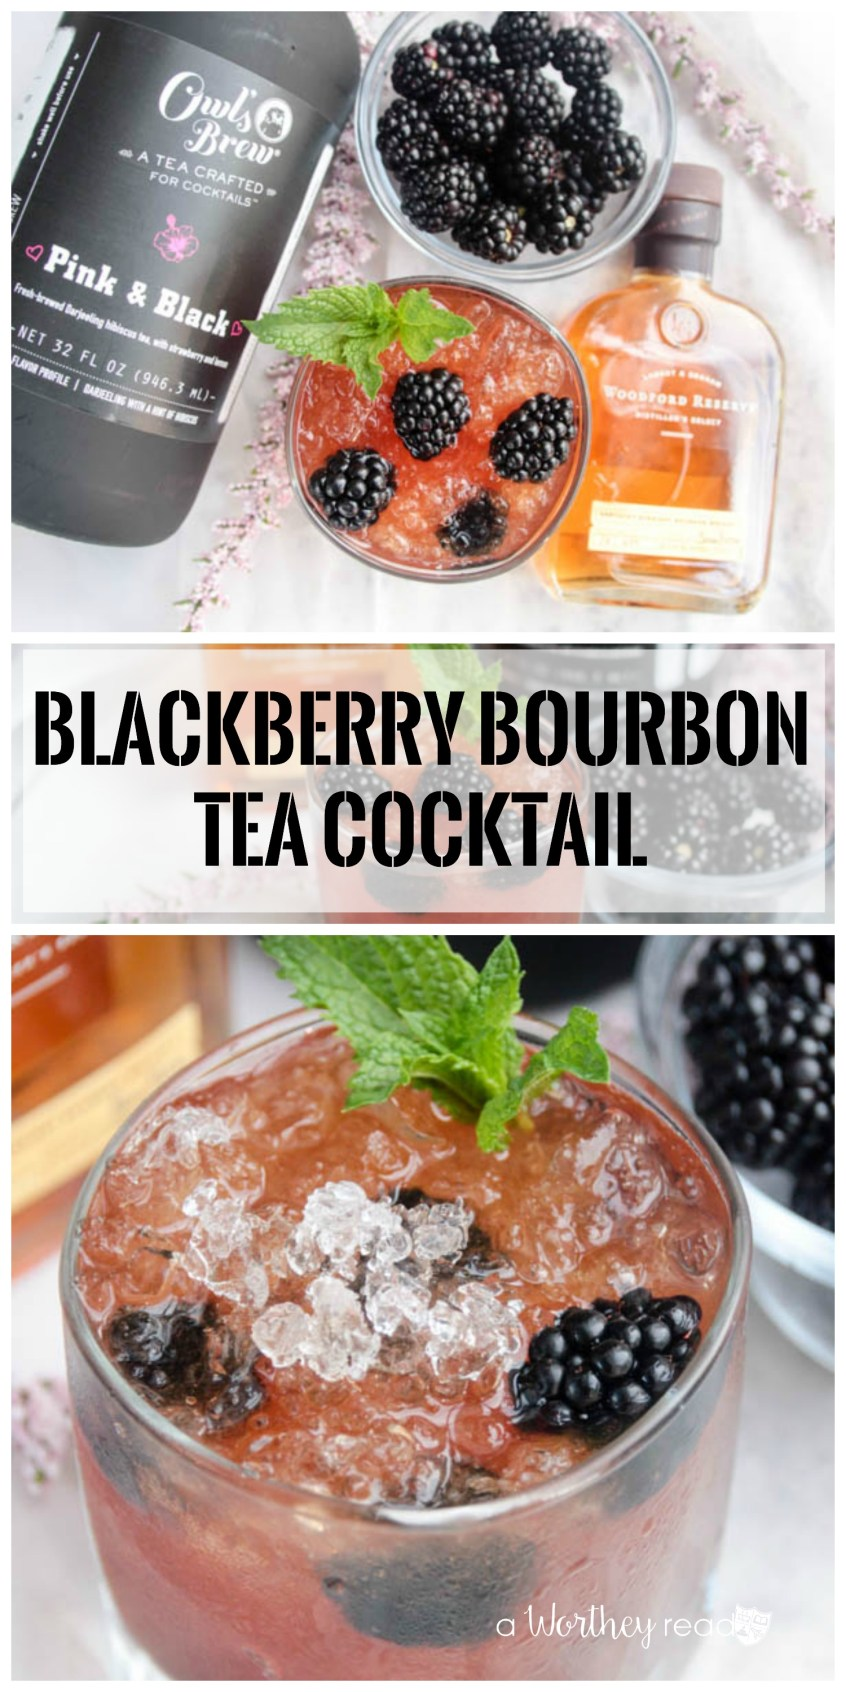 Fleshed out with a bit of homemade blackberry simple syrup, whole blackberries and crushed ice and we got ourselves a serious contender for the best cocktail of the summer.- Blackberry Bourbon Tea Cocktail